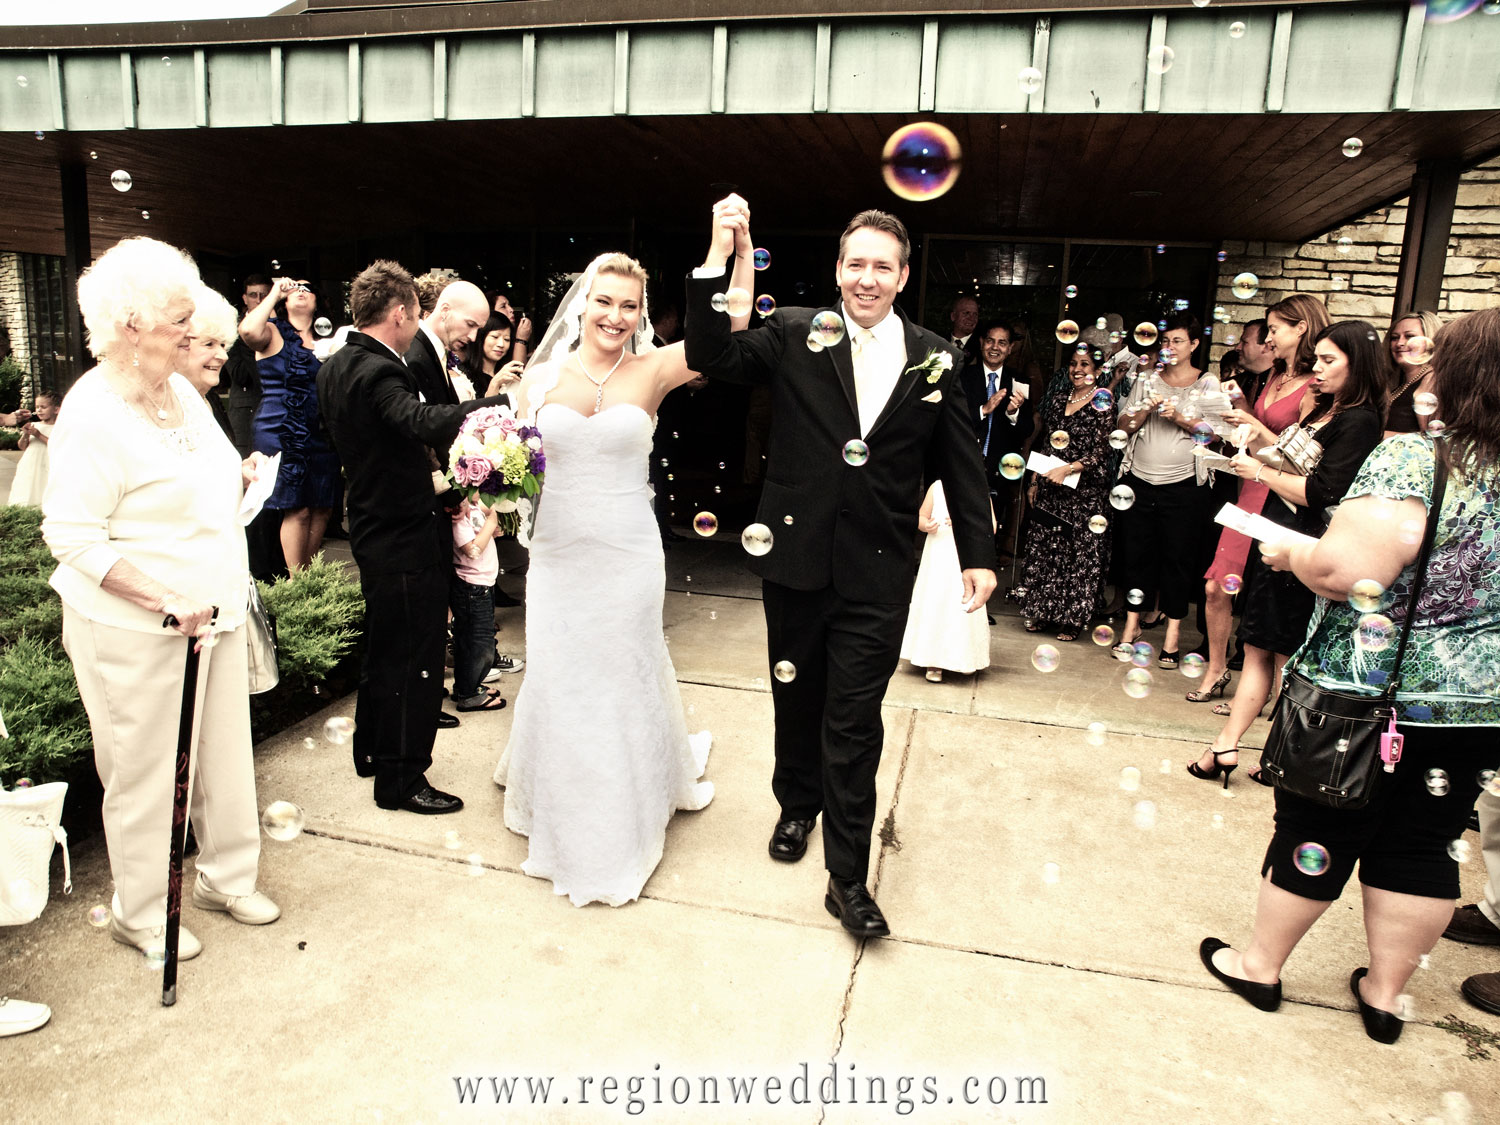 The bride and groom exit Our Lady of Grace underneath multi colored bubbles.